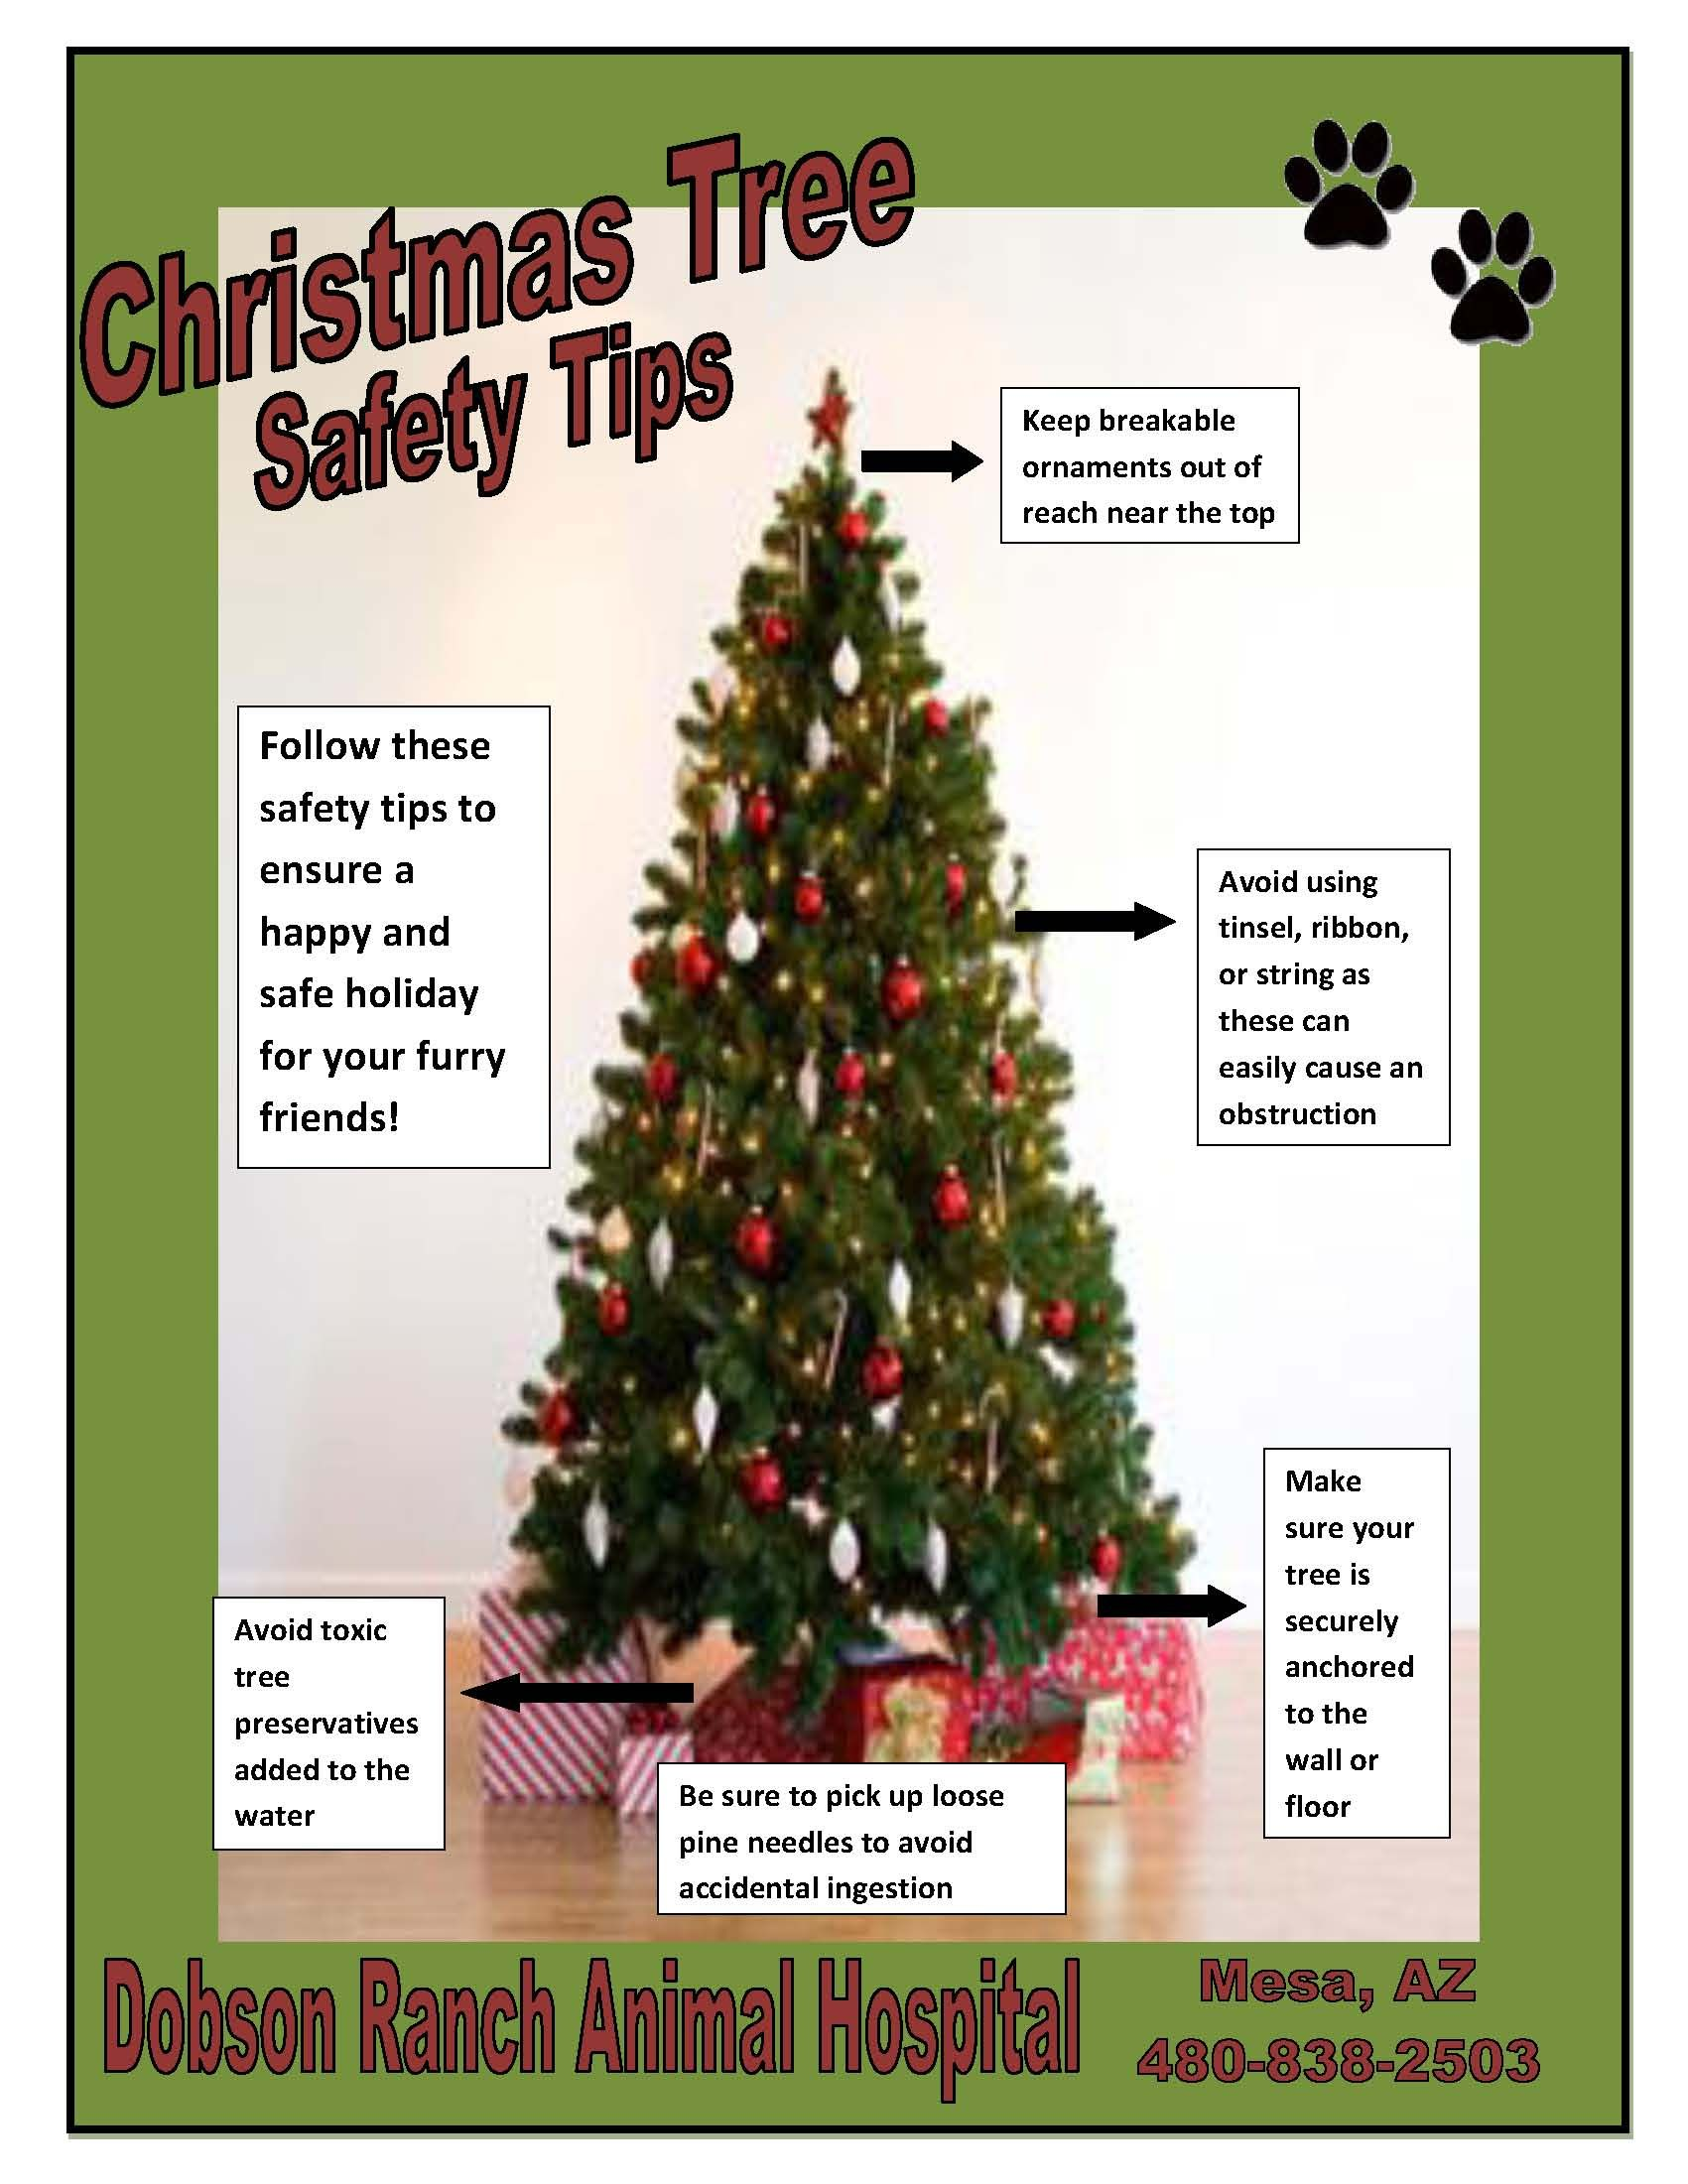 5 tips for a pet safe Christmas tree, from Dobson Ranch ...